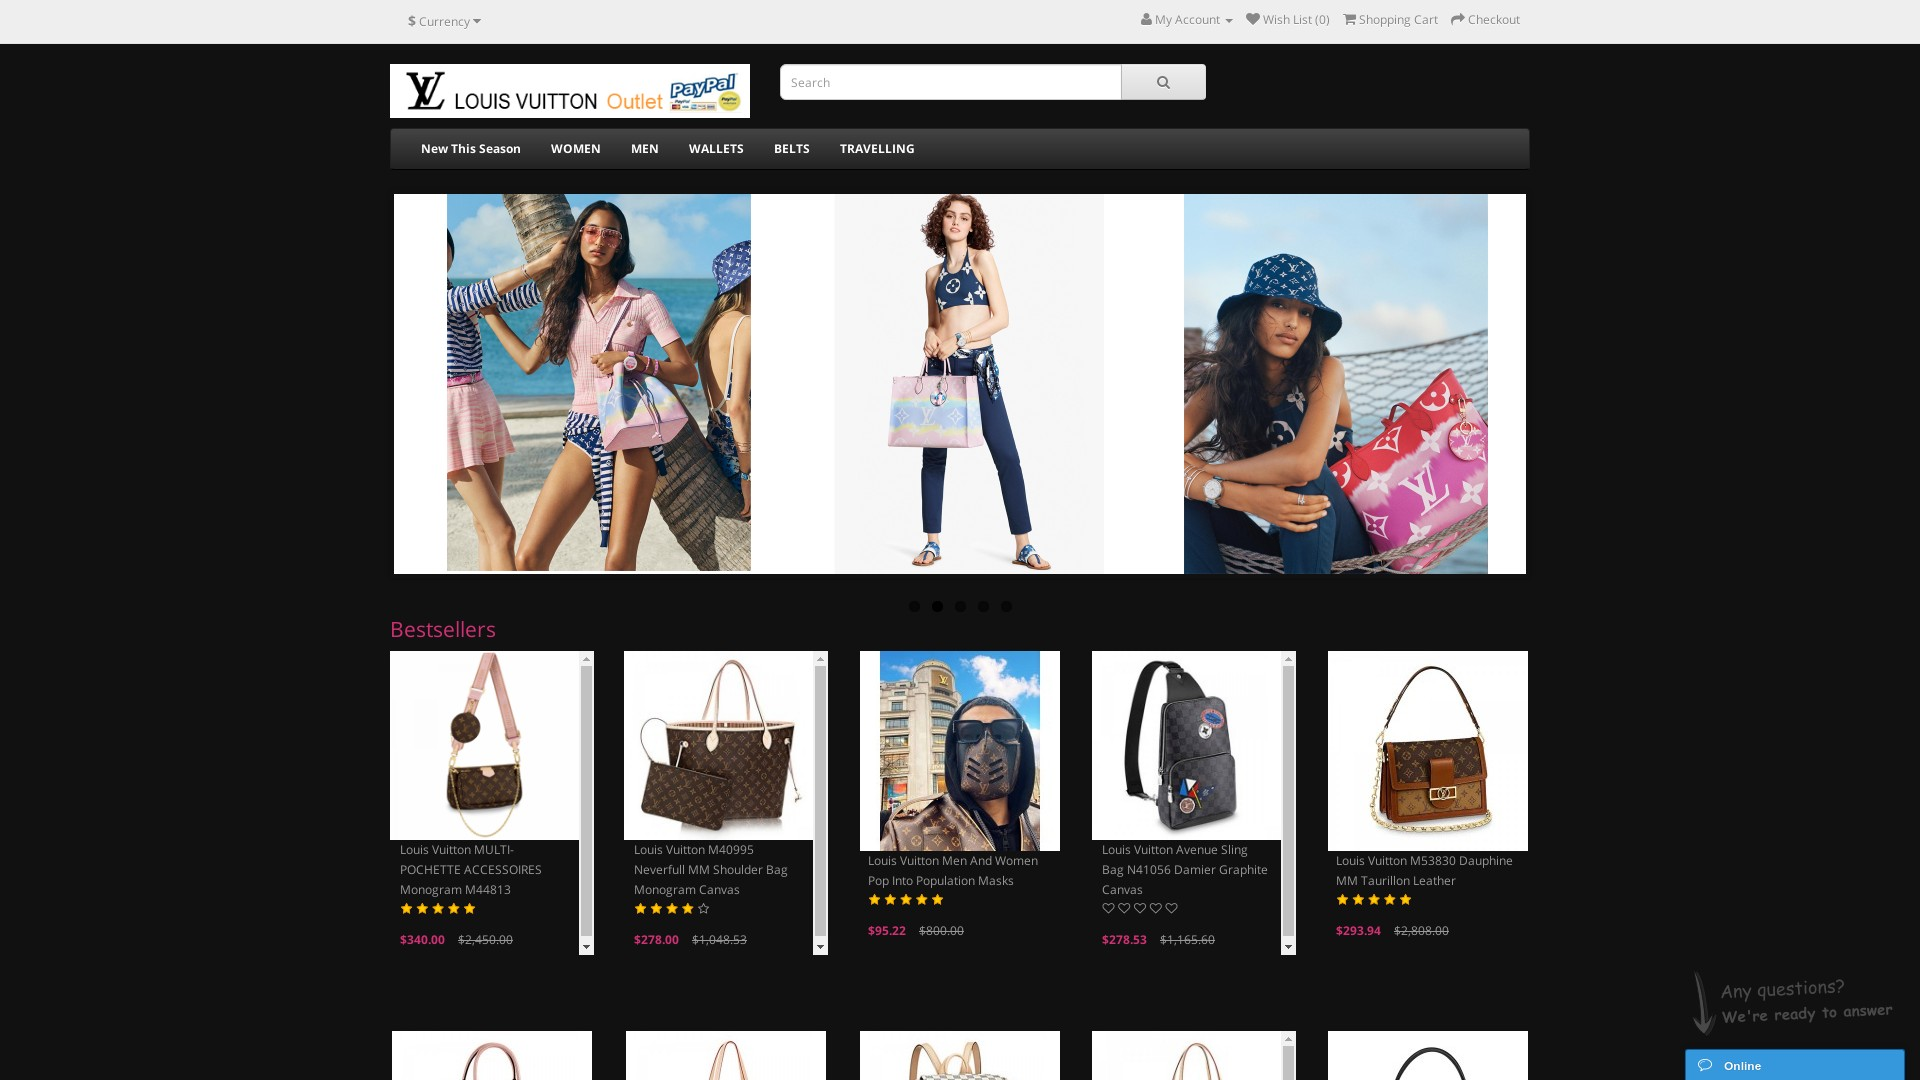 Is Luxury Bags Outlets Shop a Scam? Review of the Online Apparel Store